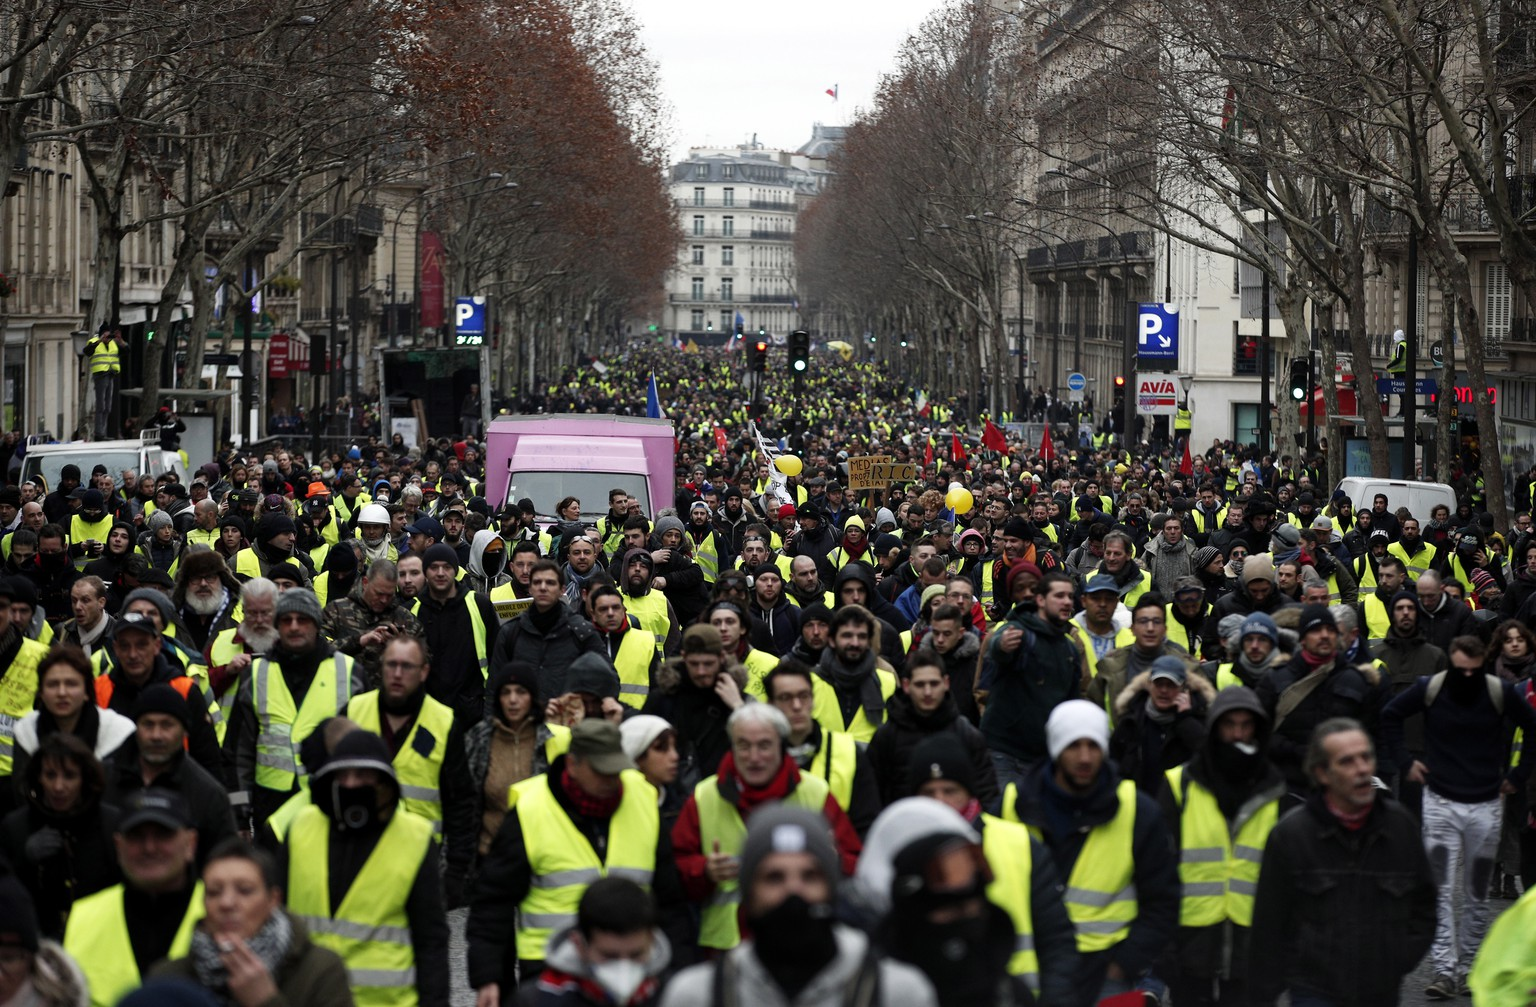 epa07277484 Protesters from the 'Gilets Jaunes' (Yellow Vests) movement take part in the 'Act IX' demonstration (the 9th consecutive national protest on a Saturday) in Paris, France, 12 January 2019. The so-called 'gilets jaunes' (yellow vests) is a grassroots protest movement with supporters from a wide span of the political spectrum, that originally started with protest across the nation in late 2018 against high fuel prices. The movement in the meantime also protests the French government's tax reforms, the increasing costs of living and some even call for the resignation of French President Emmanuel Macron.  EPA/YOAN VALAT